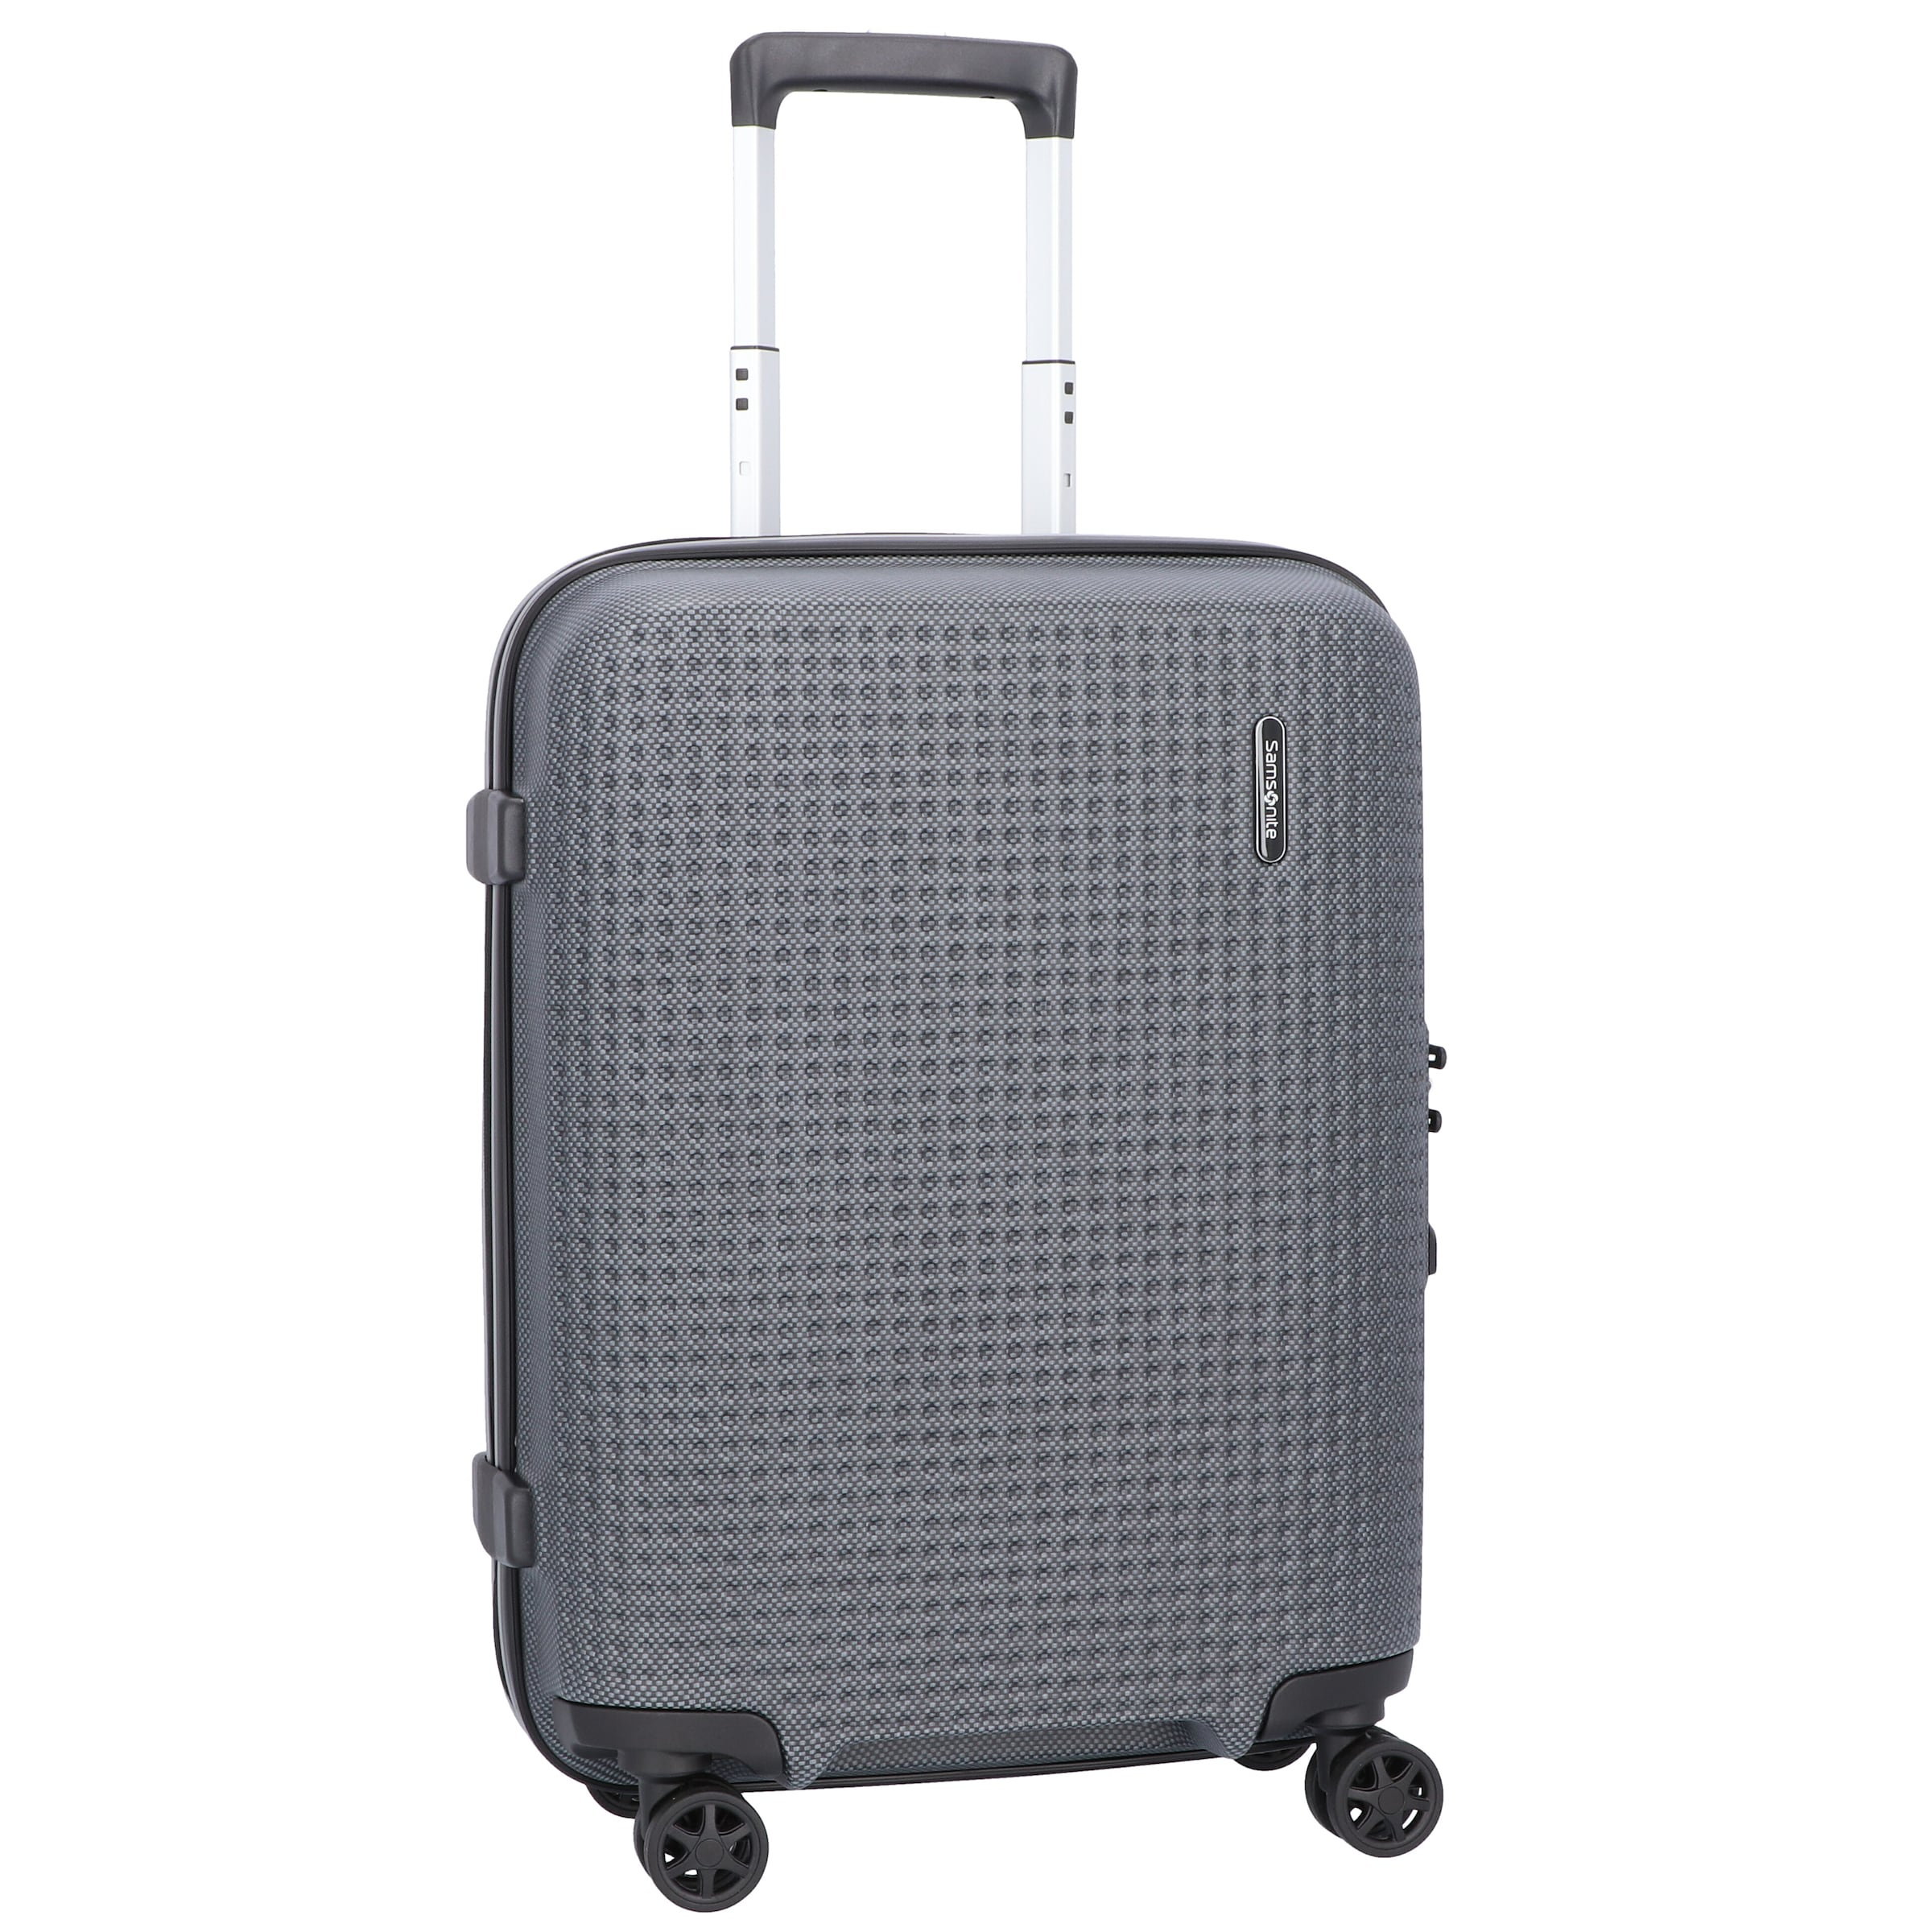 Graphit Kabinentrolley In 'pixon Samsonite Spinner' IeWYH9ED2